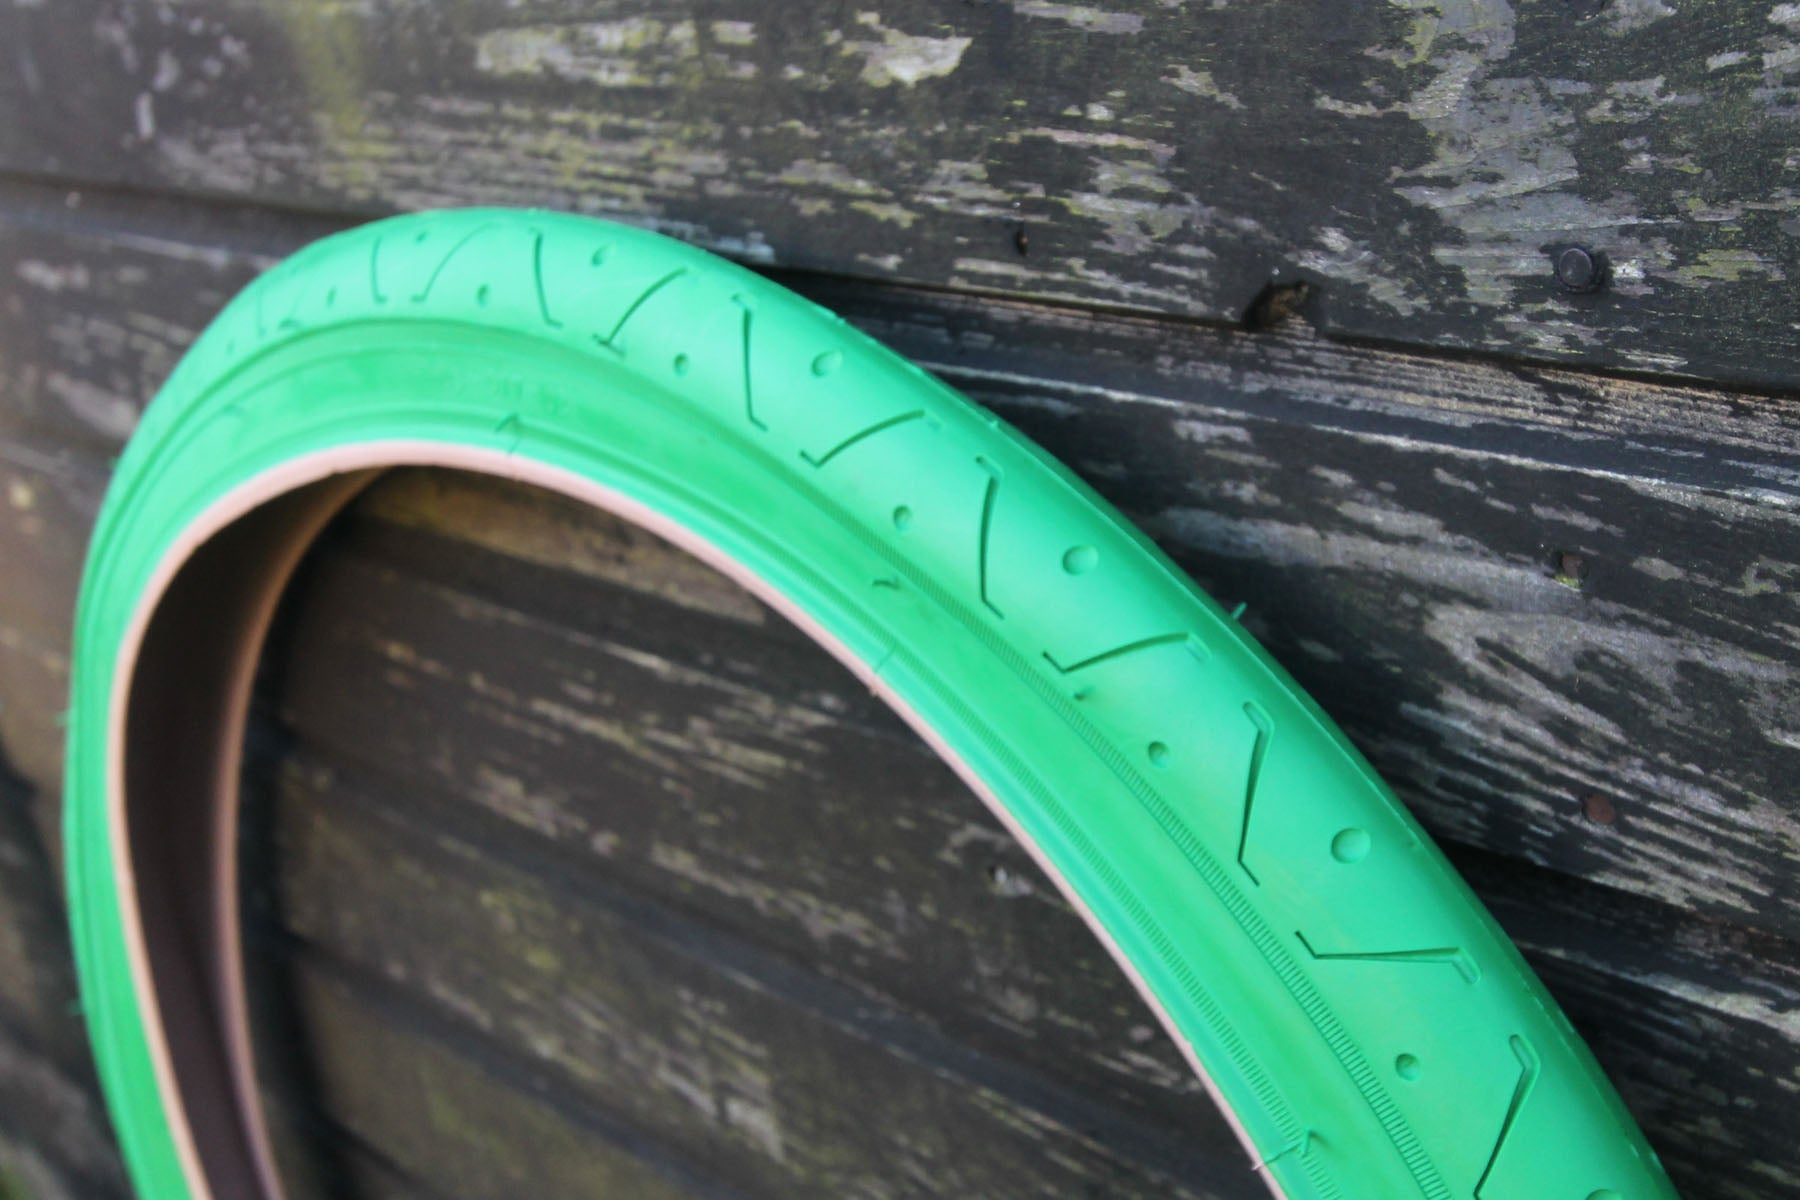 LS077 GREEN BICYCLE SLICK TYRE TIRE 26 X 2.10